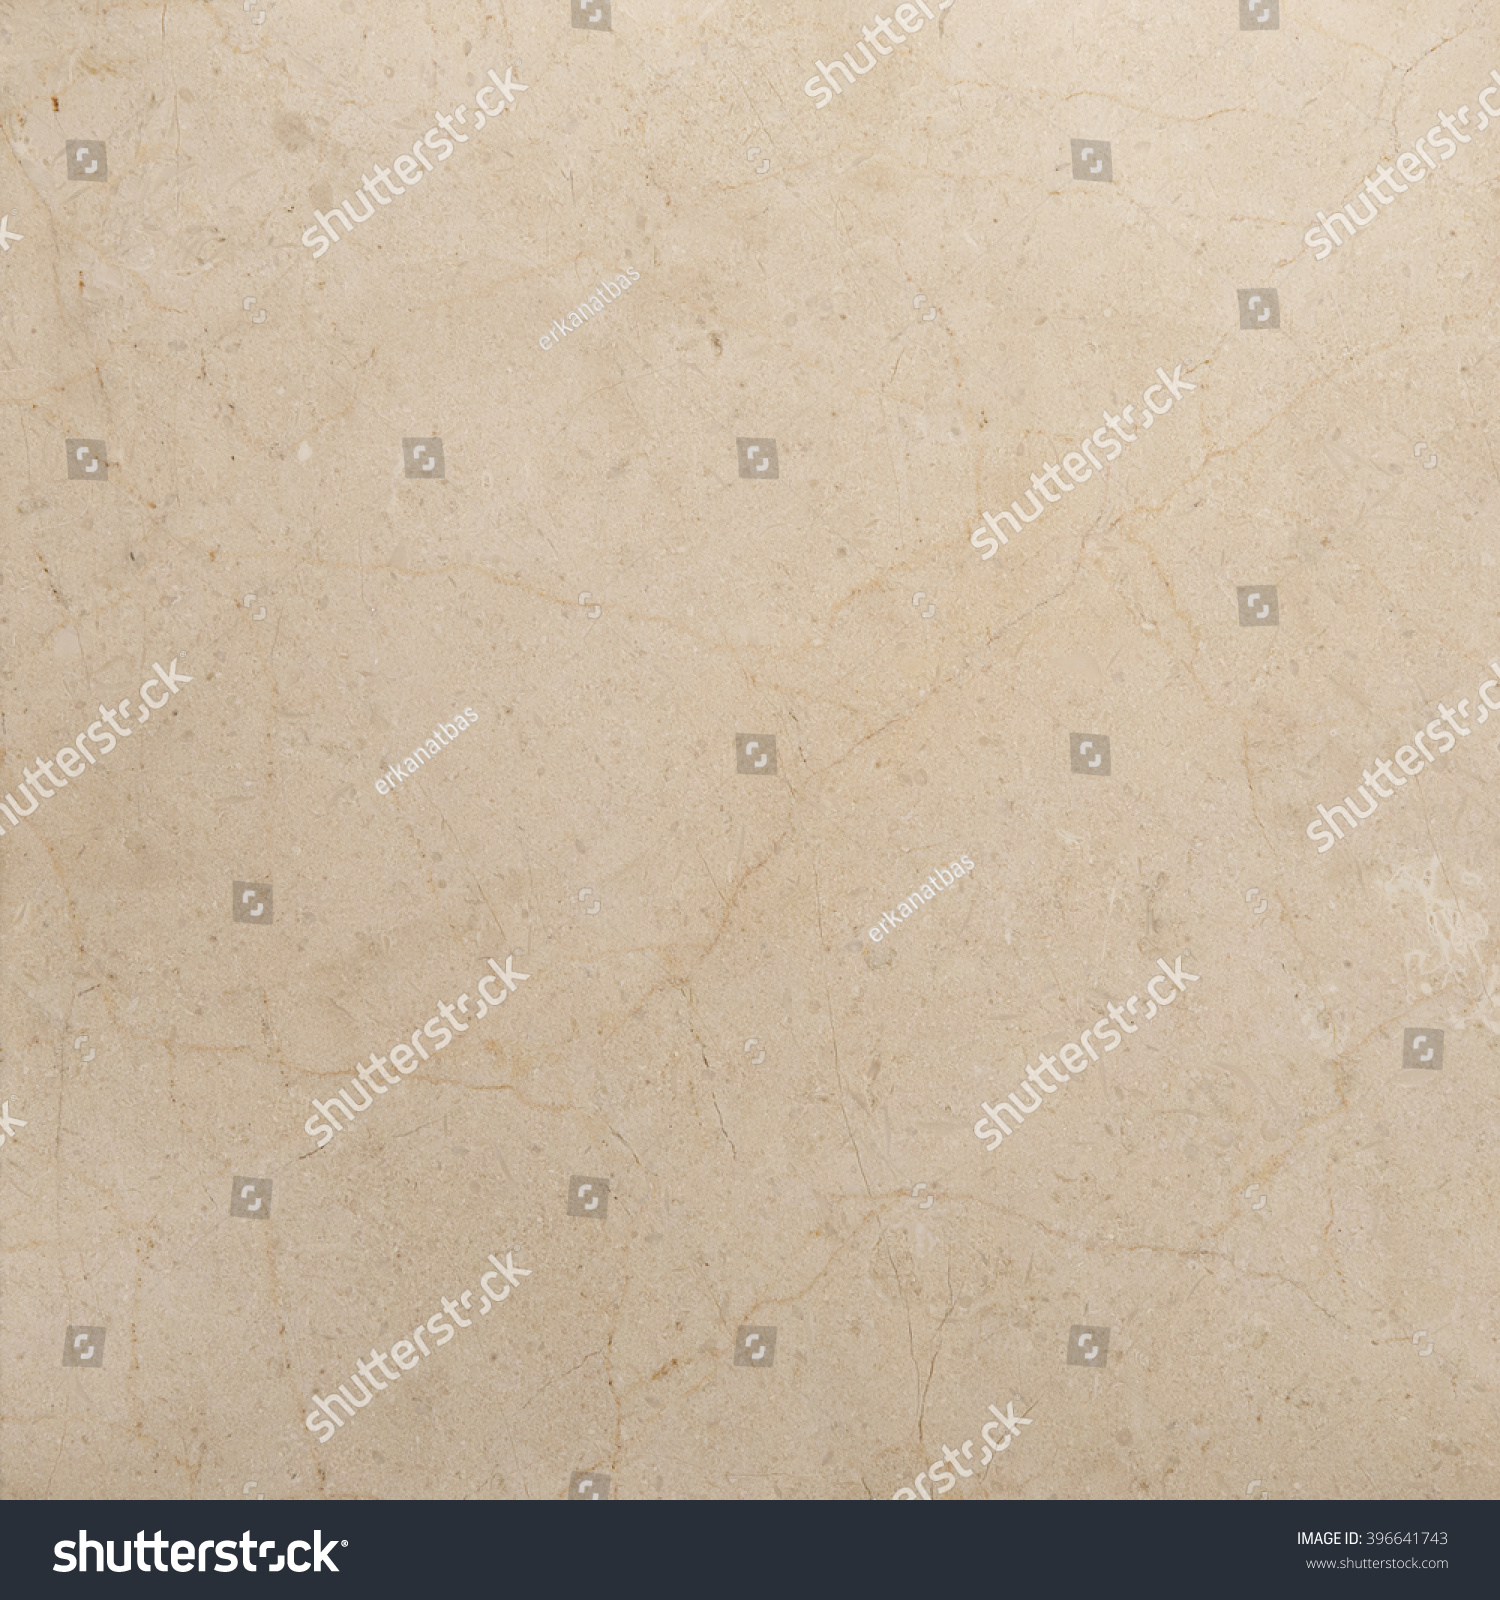 Light Brown Marble : Light brown marble granite seamless background stock photo